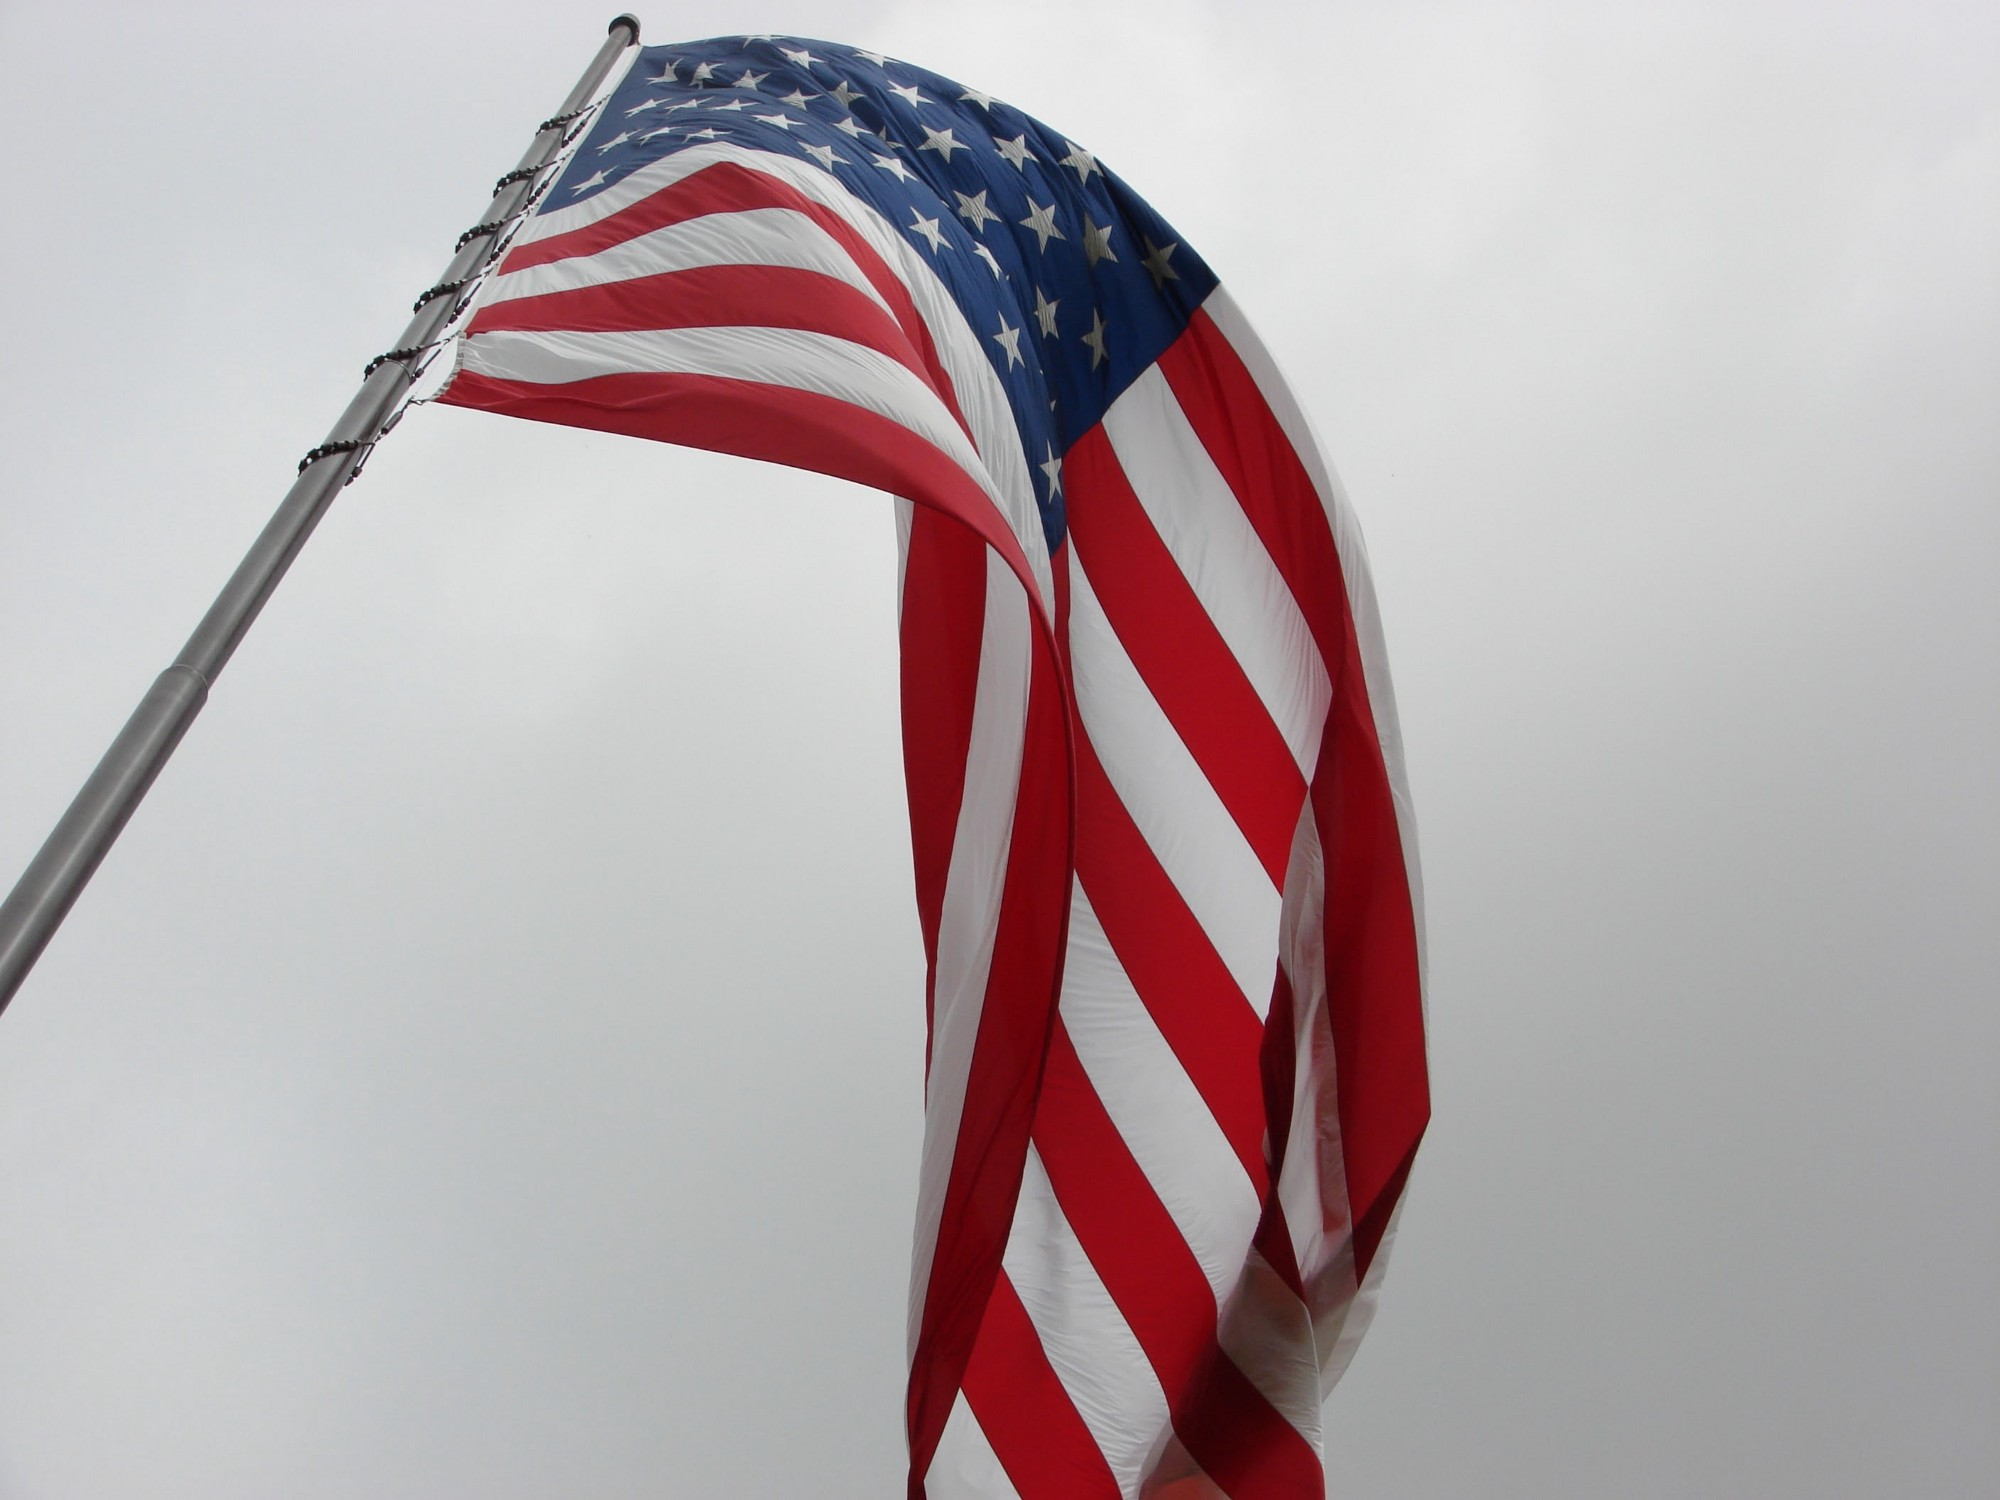 looking up at a USA flag on a flag pole, flying on a cloudy day